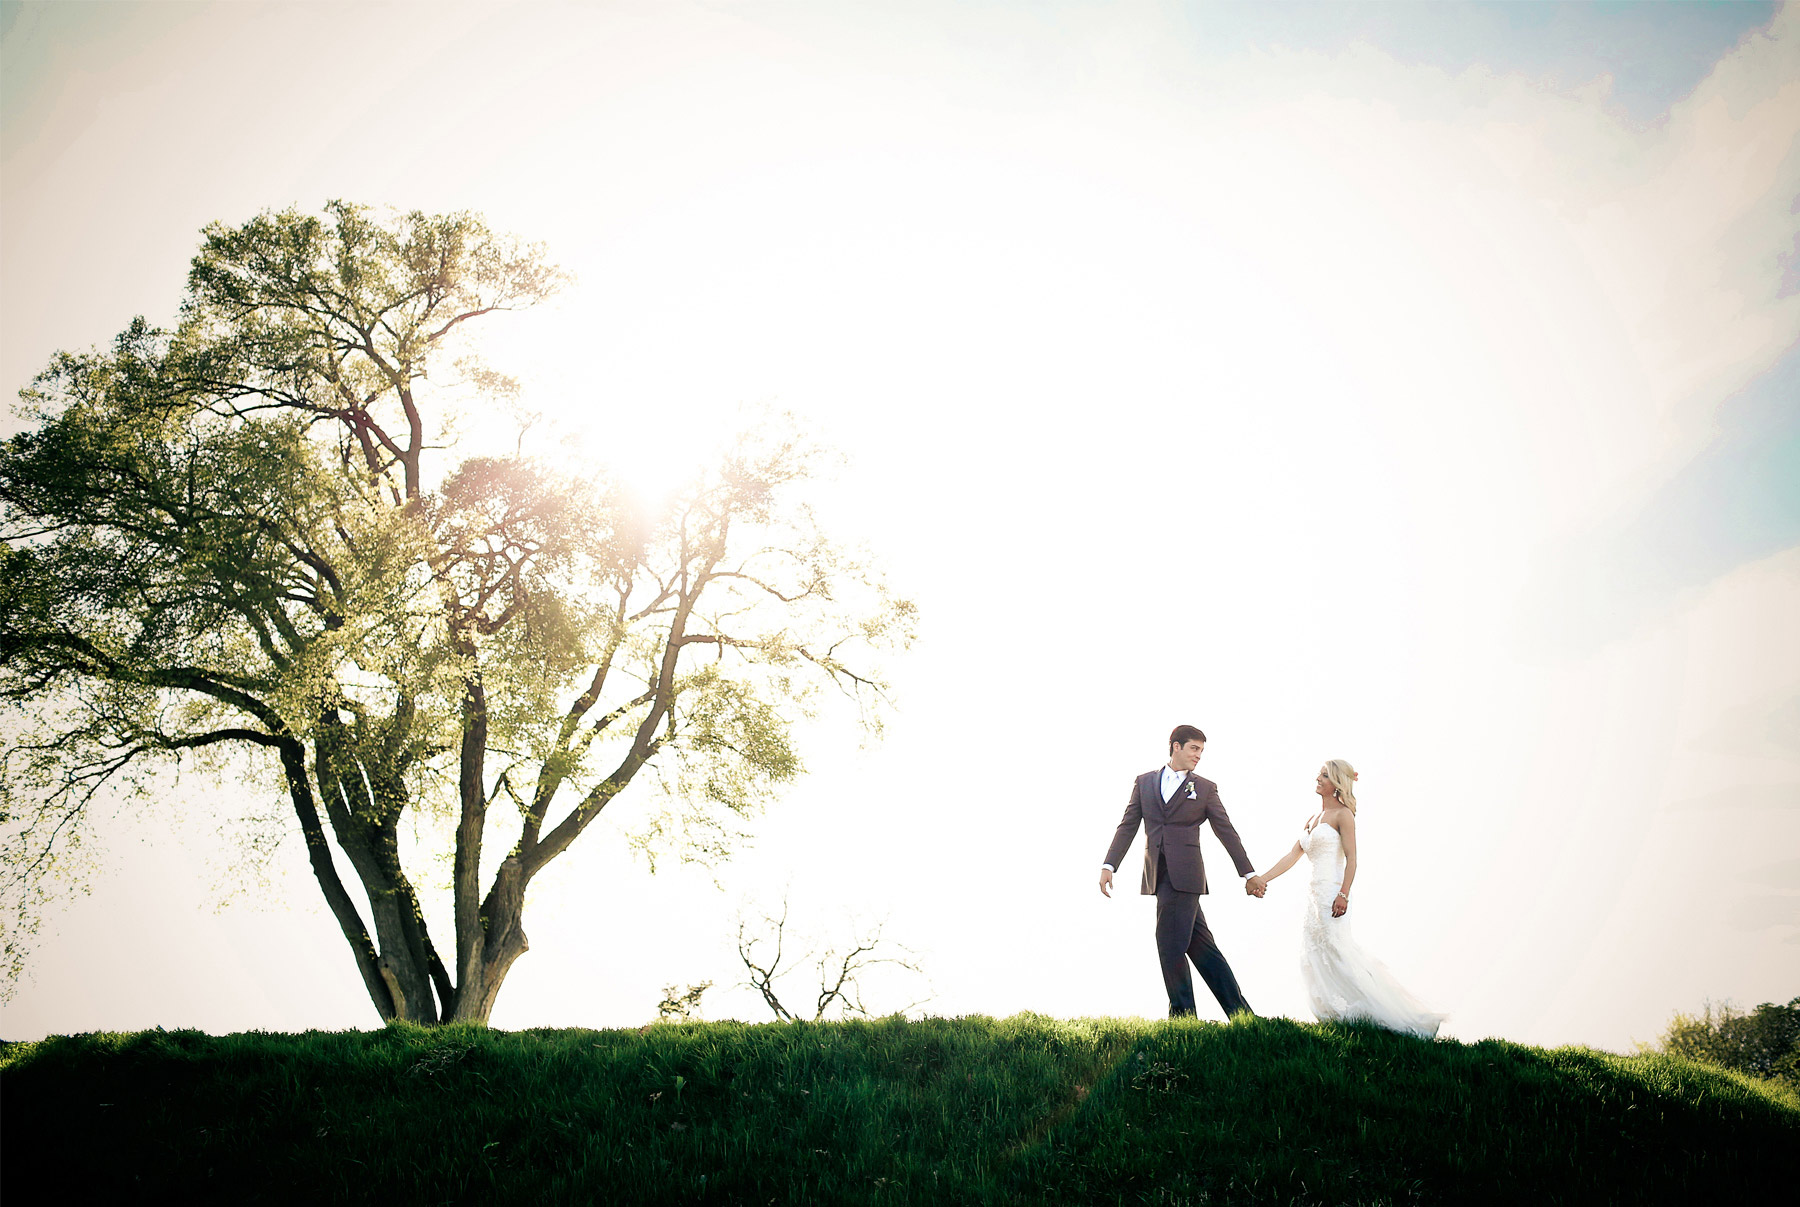 16-Minneapolis-Minnesota-Wedding-Photography-by-Vick-Photography-at-Minikahda-Country-Club-Sarah-&-Chad.jpg